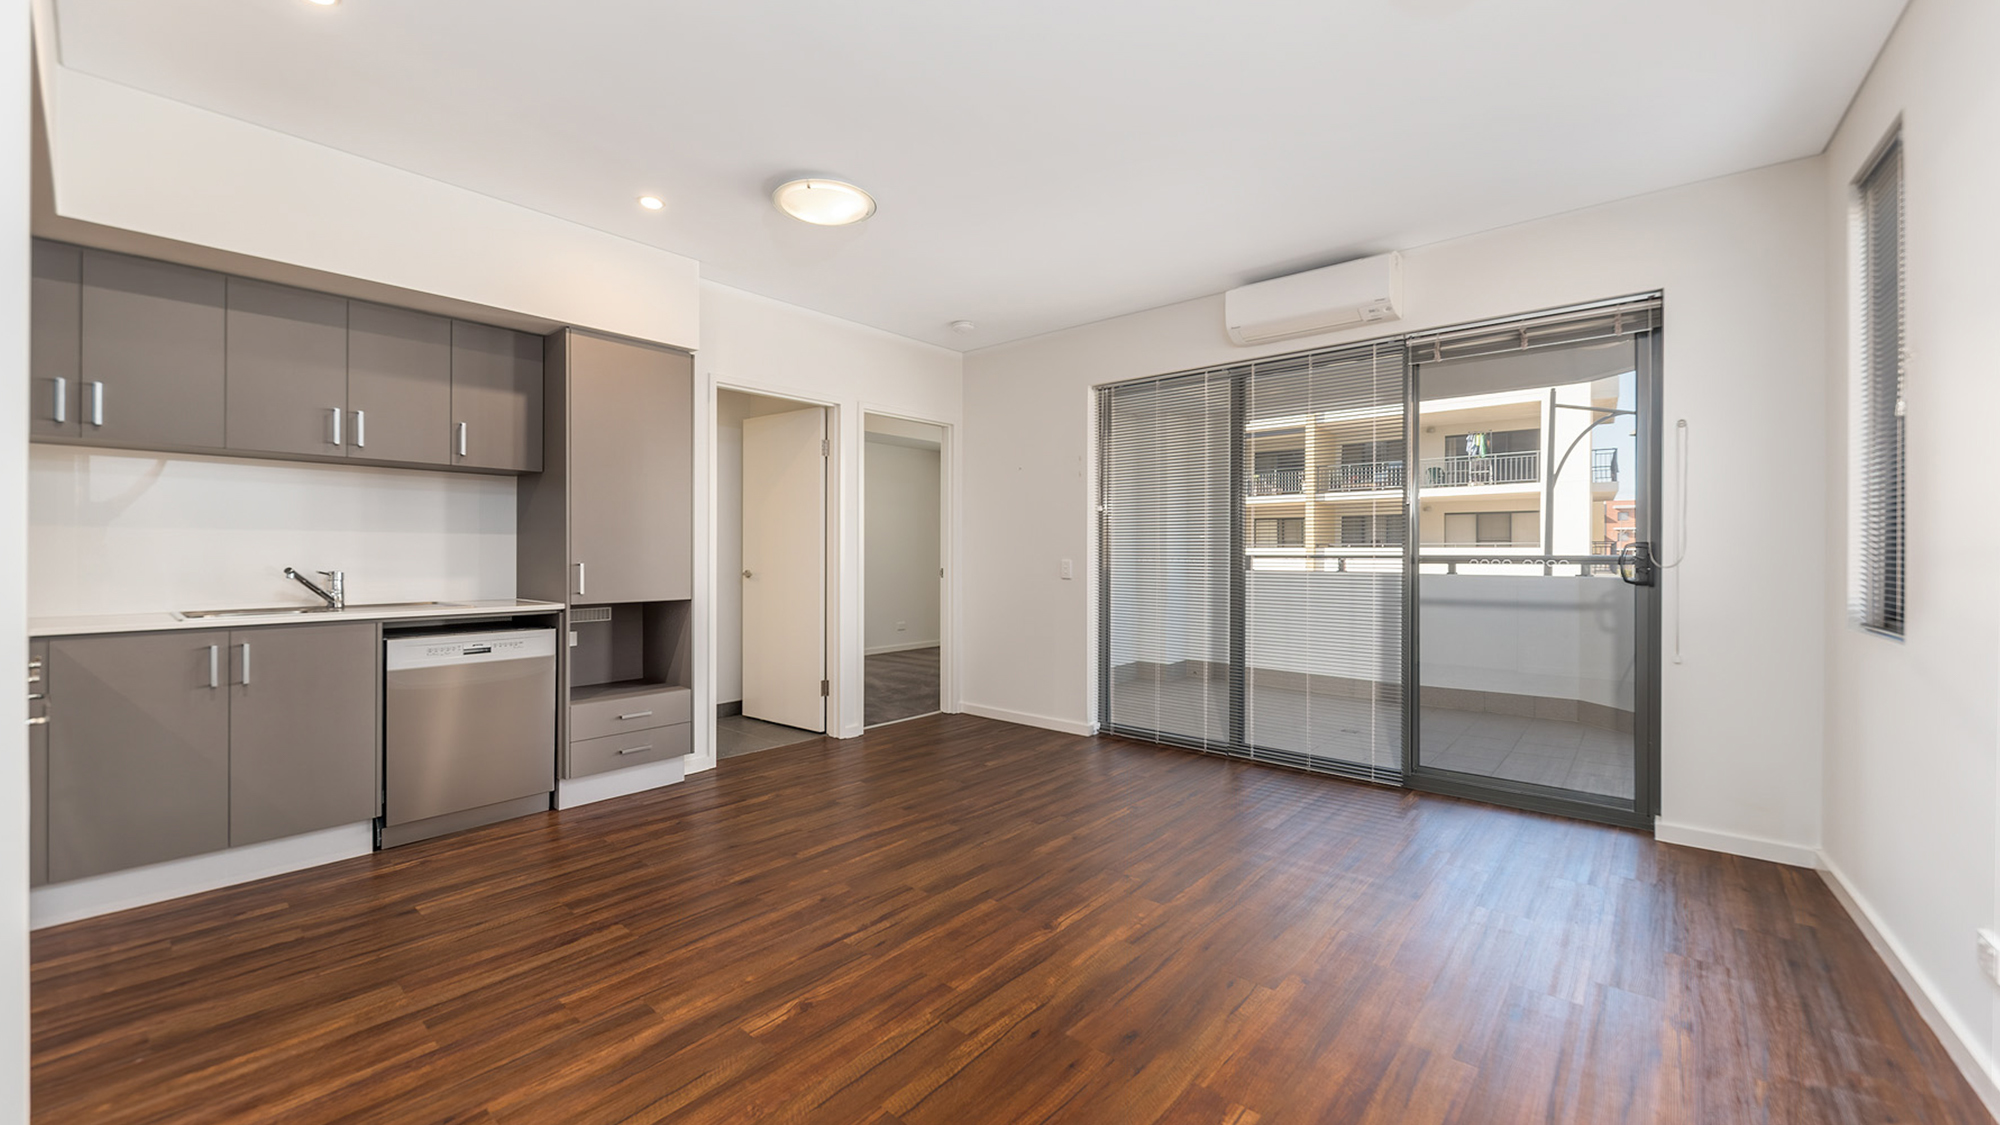 Cockburn Living - Vicinity Apt 8